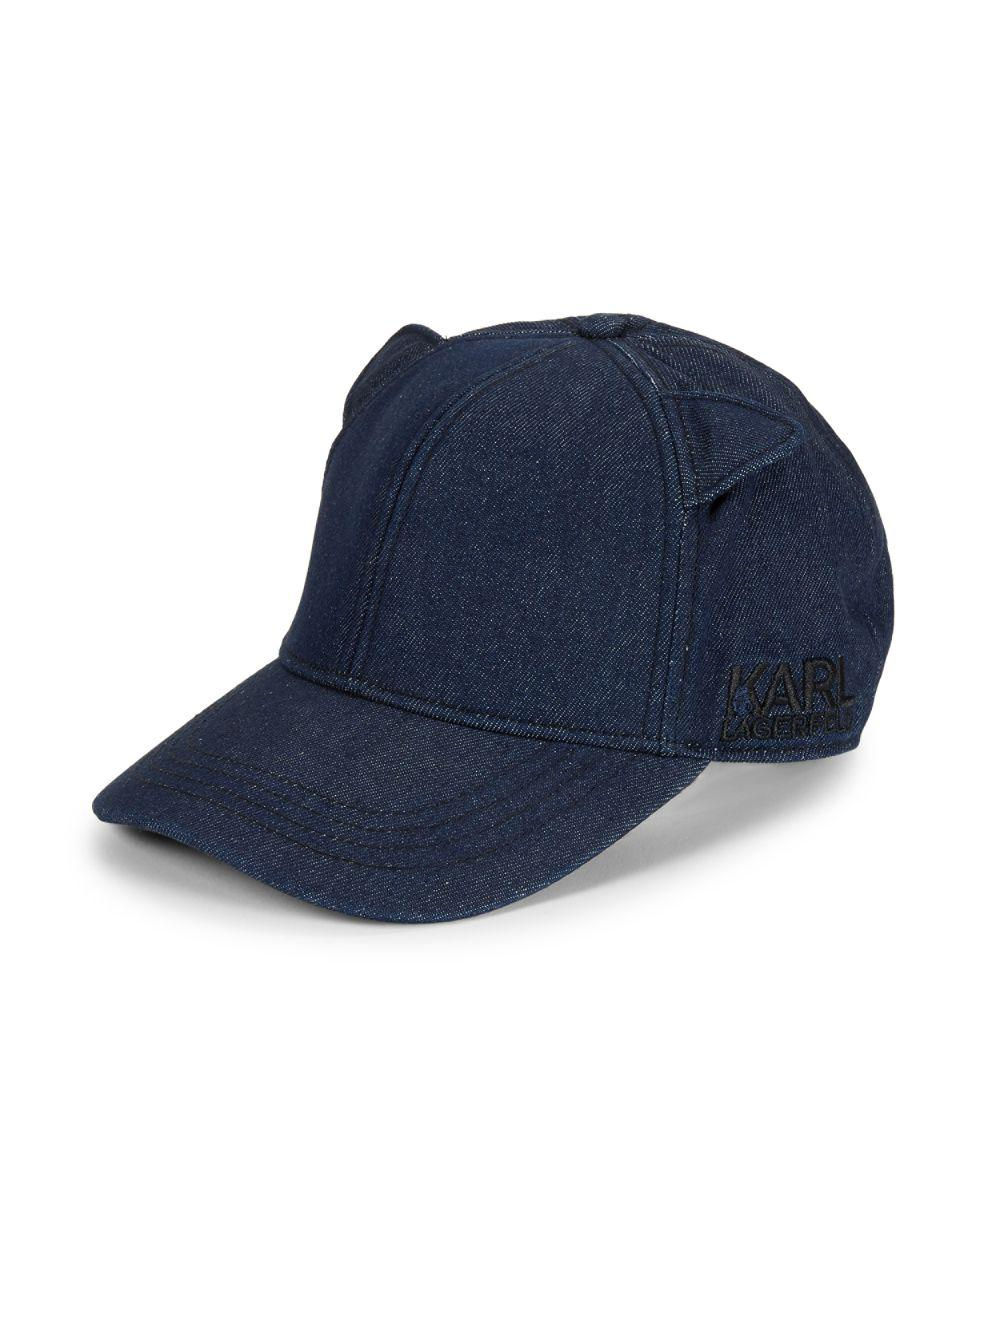 dc20d7f8a69 Karl Lagerfeld Cat Ear Baseball Cap in Blue for Men - Lyst